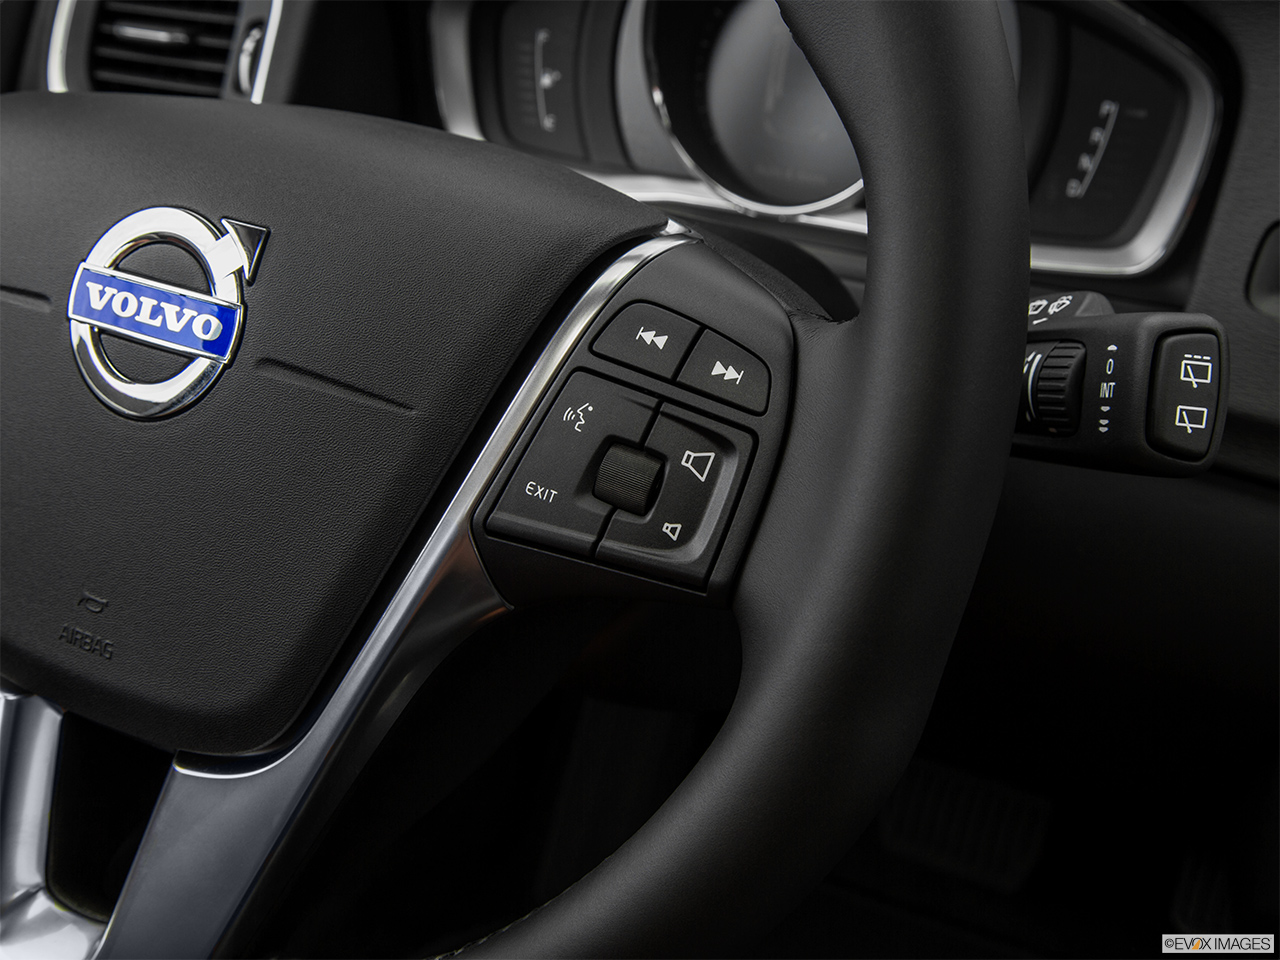 2015 Volvo V60 Cross Country T5 AWD Steering Wheel Controls (Right Side)